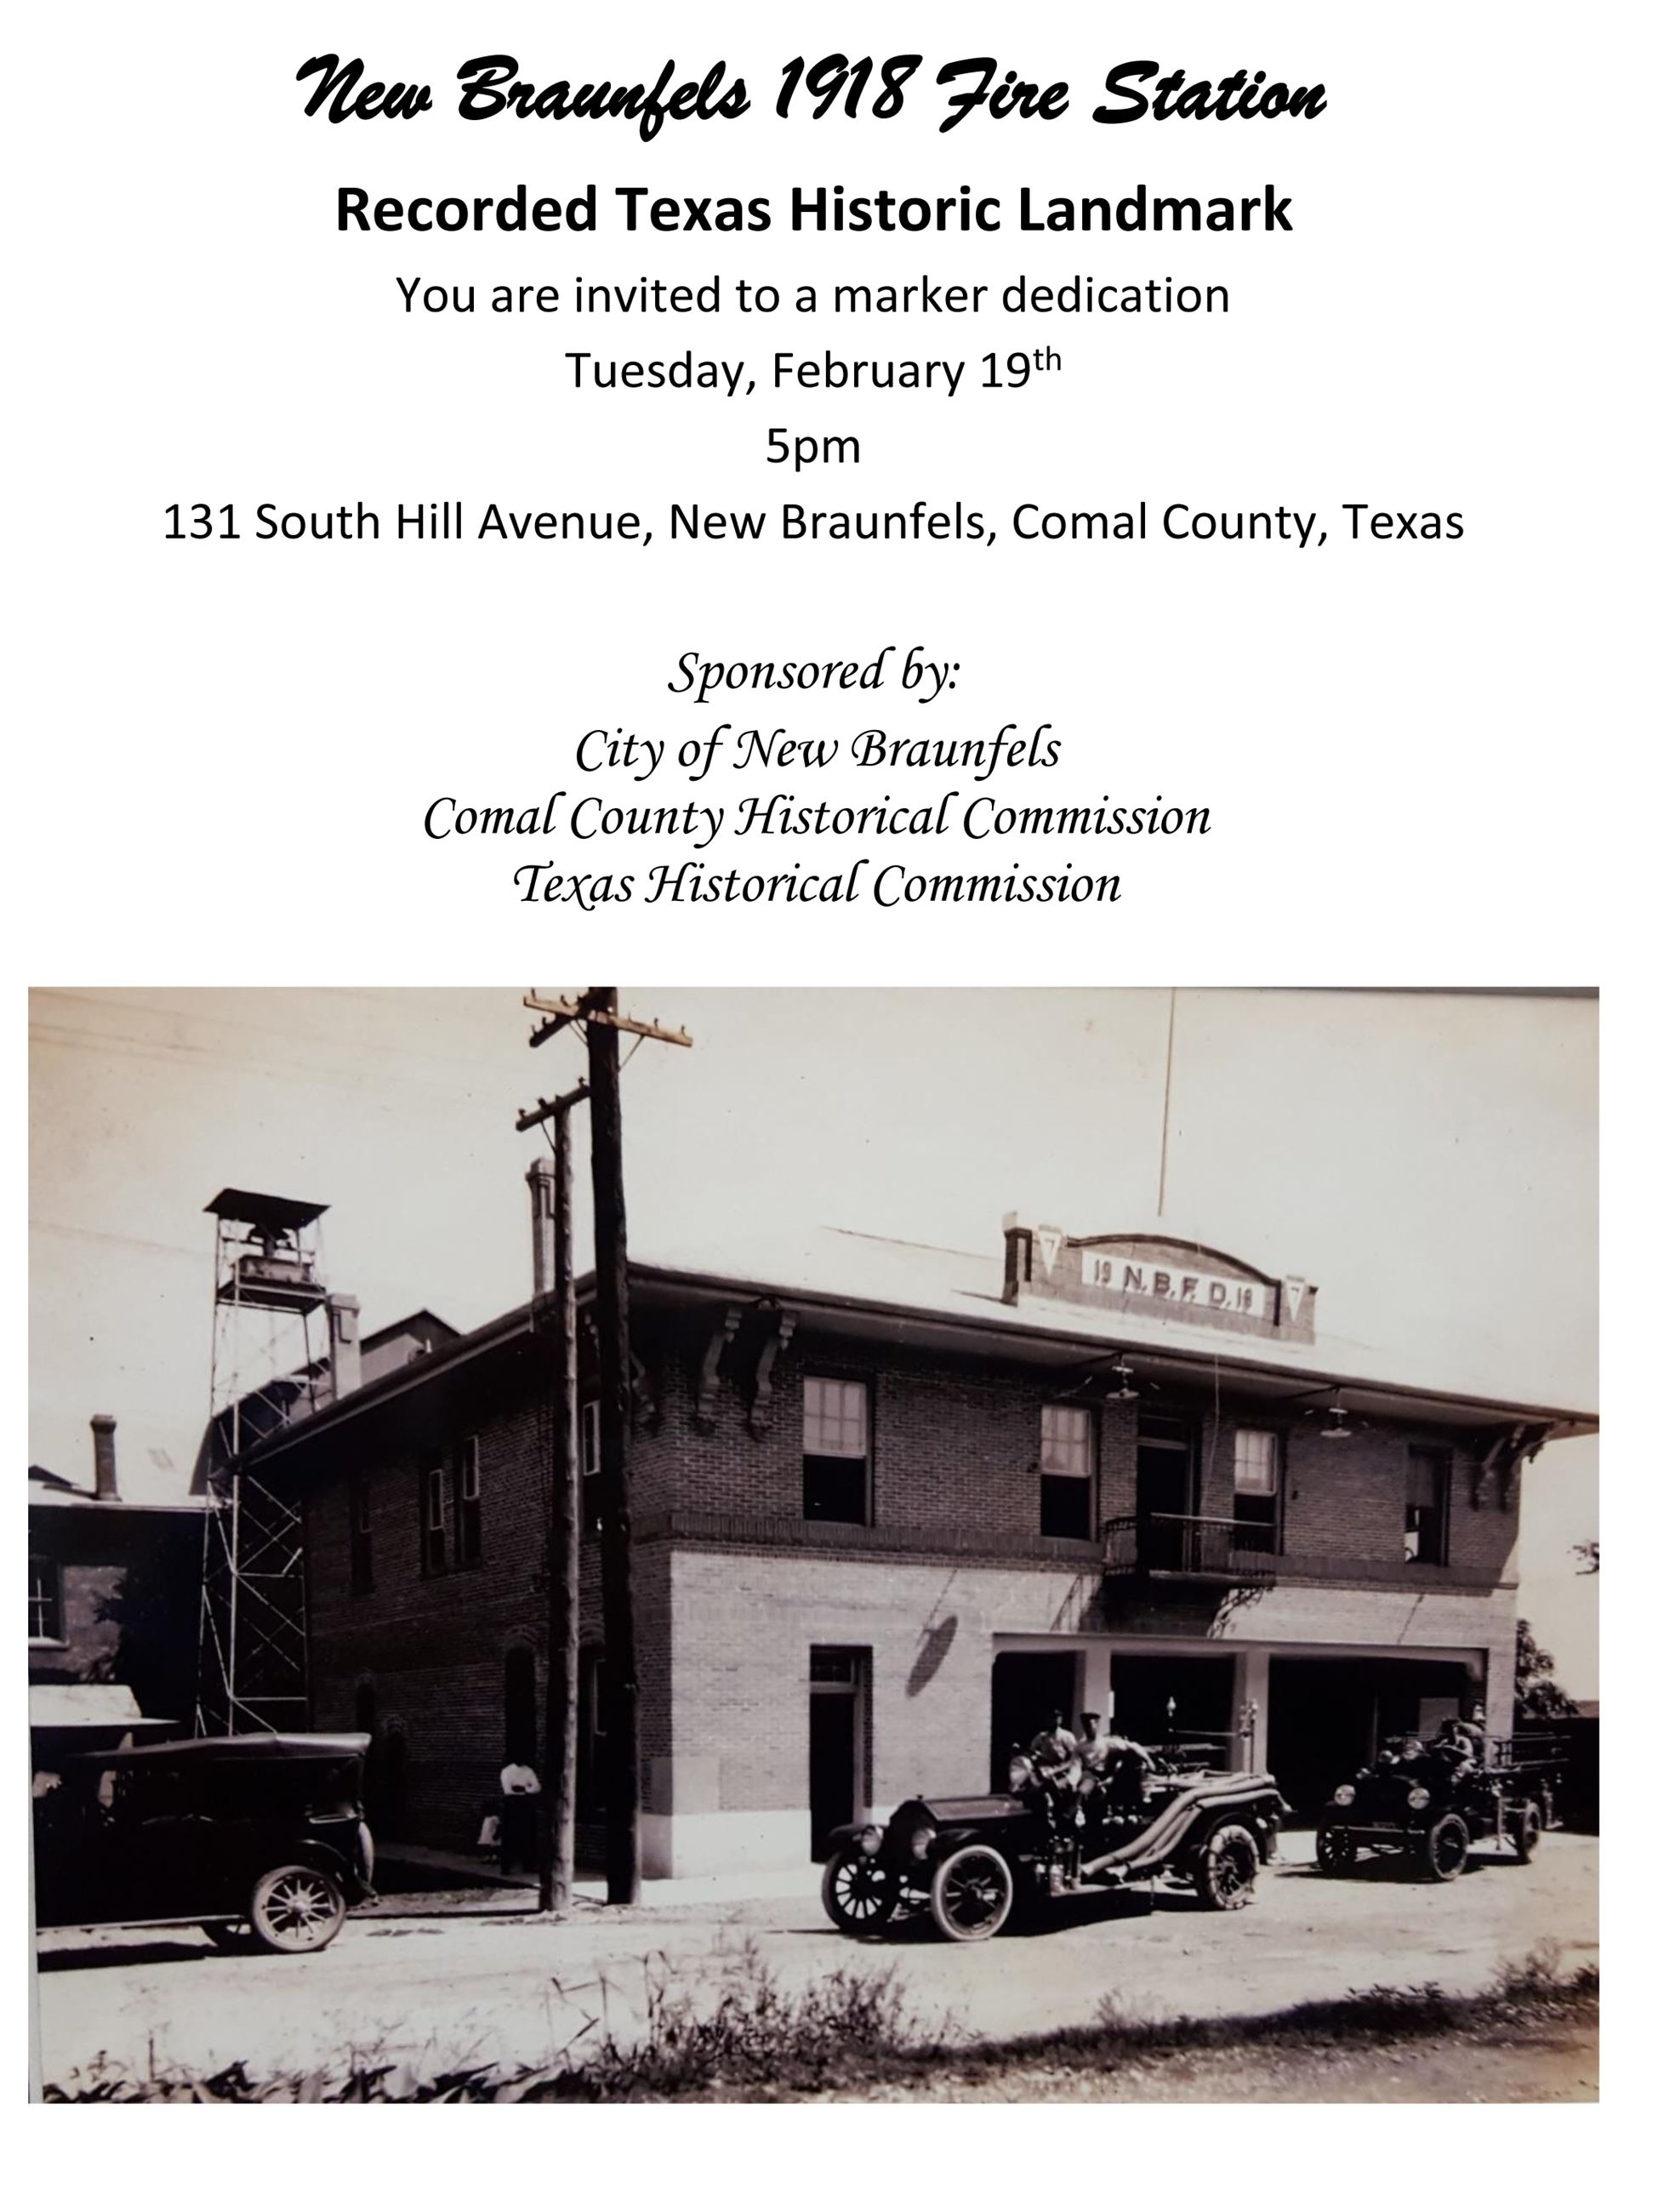 New Braunfels 1918 Fire Station Marker Dedication